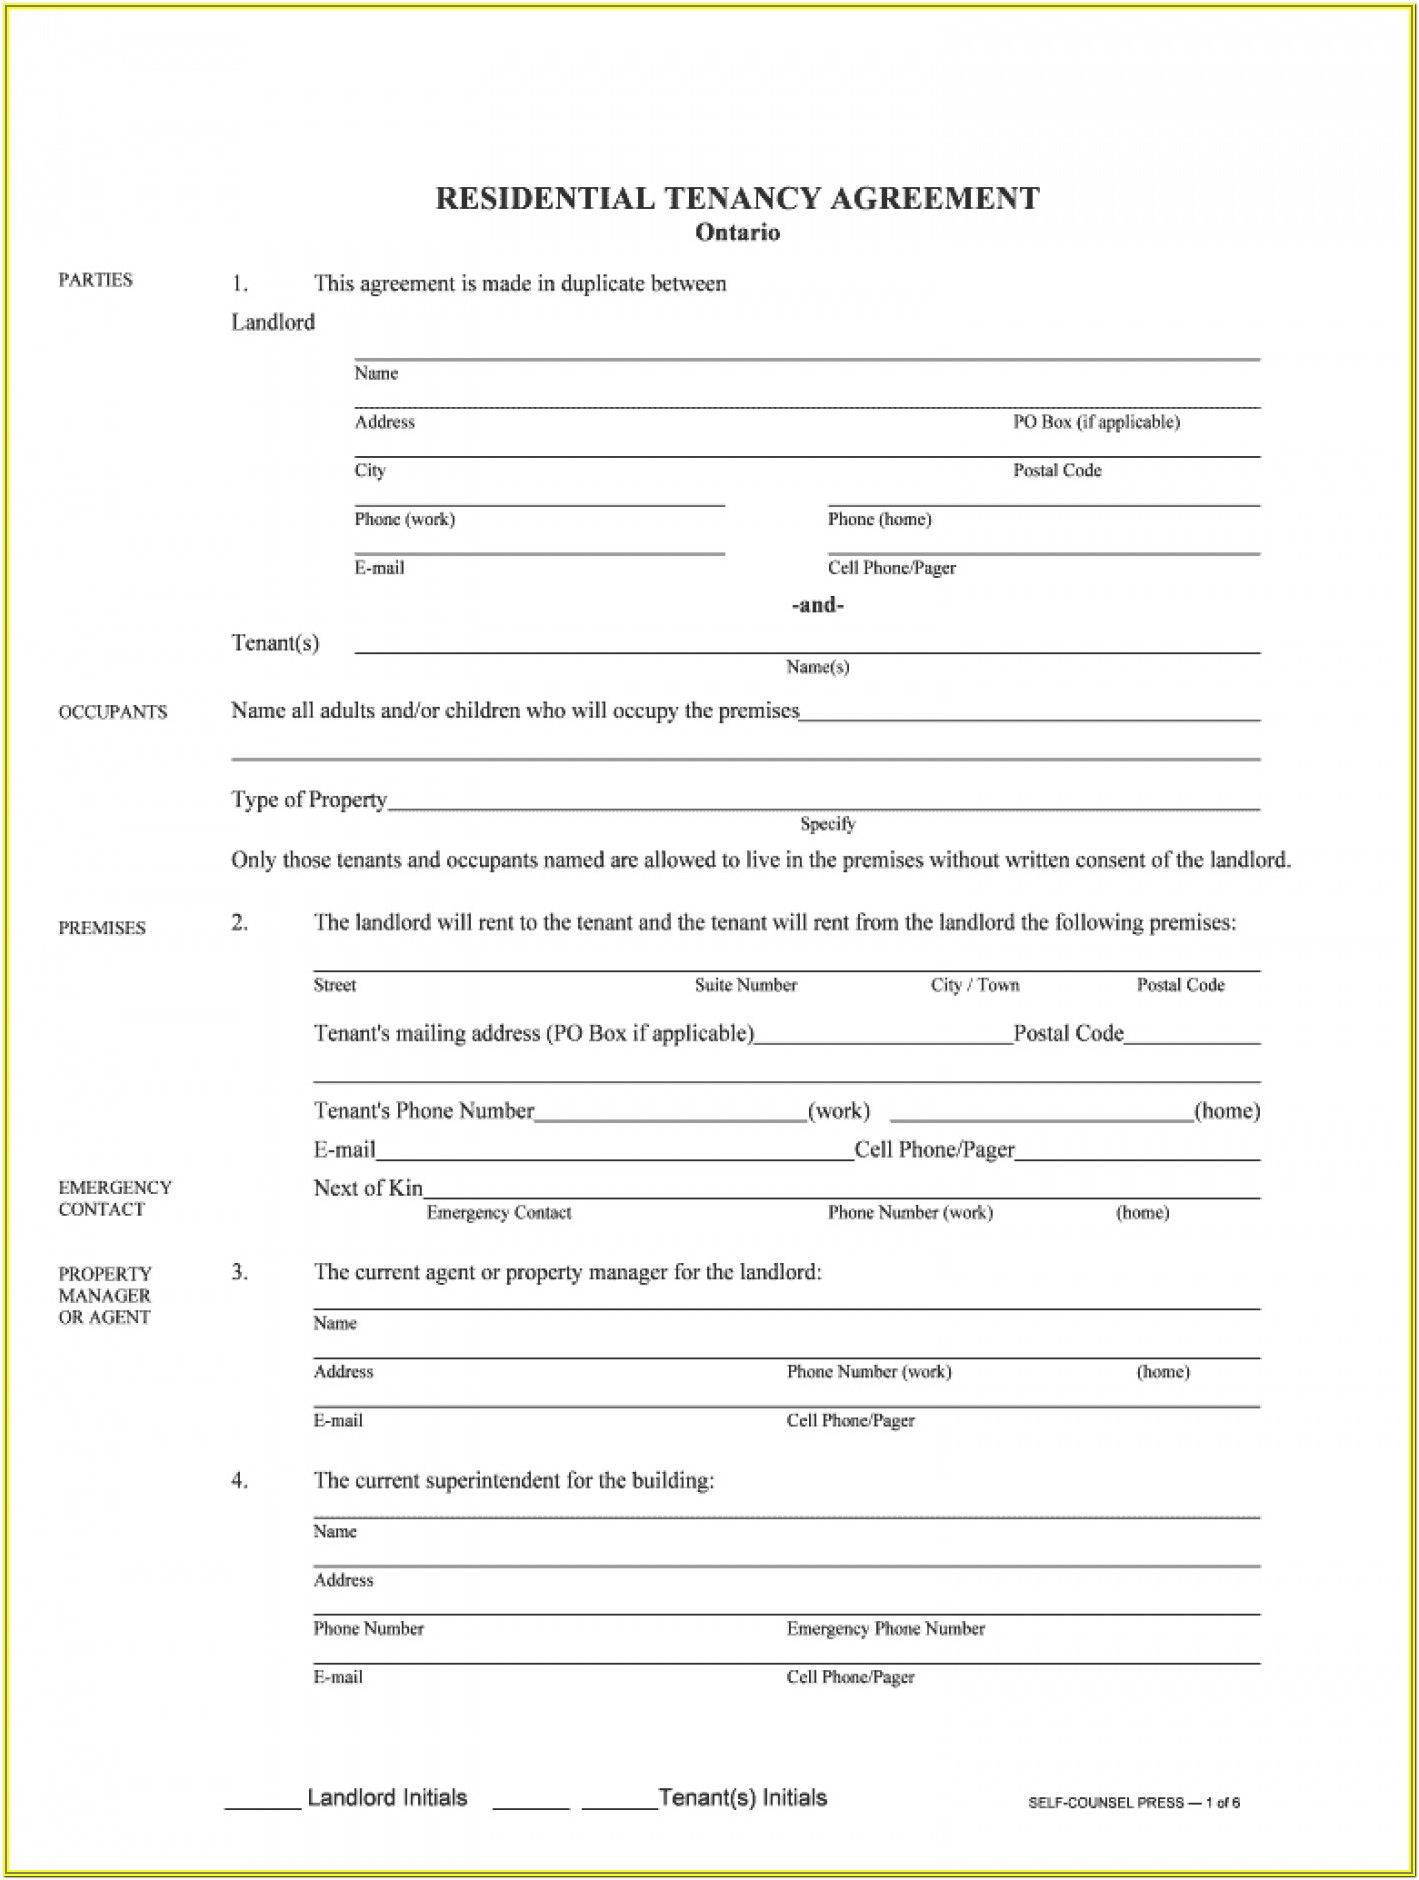 Residential Tenancy Agreement Form 24a